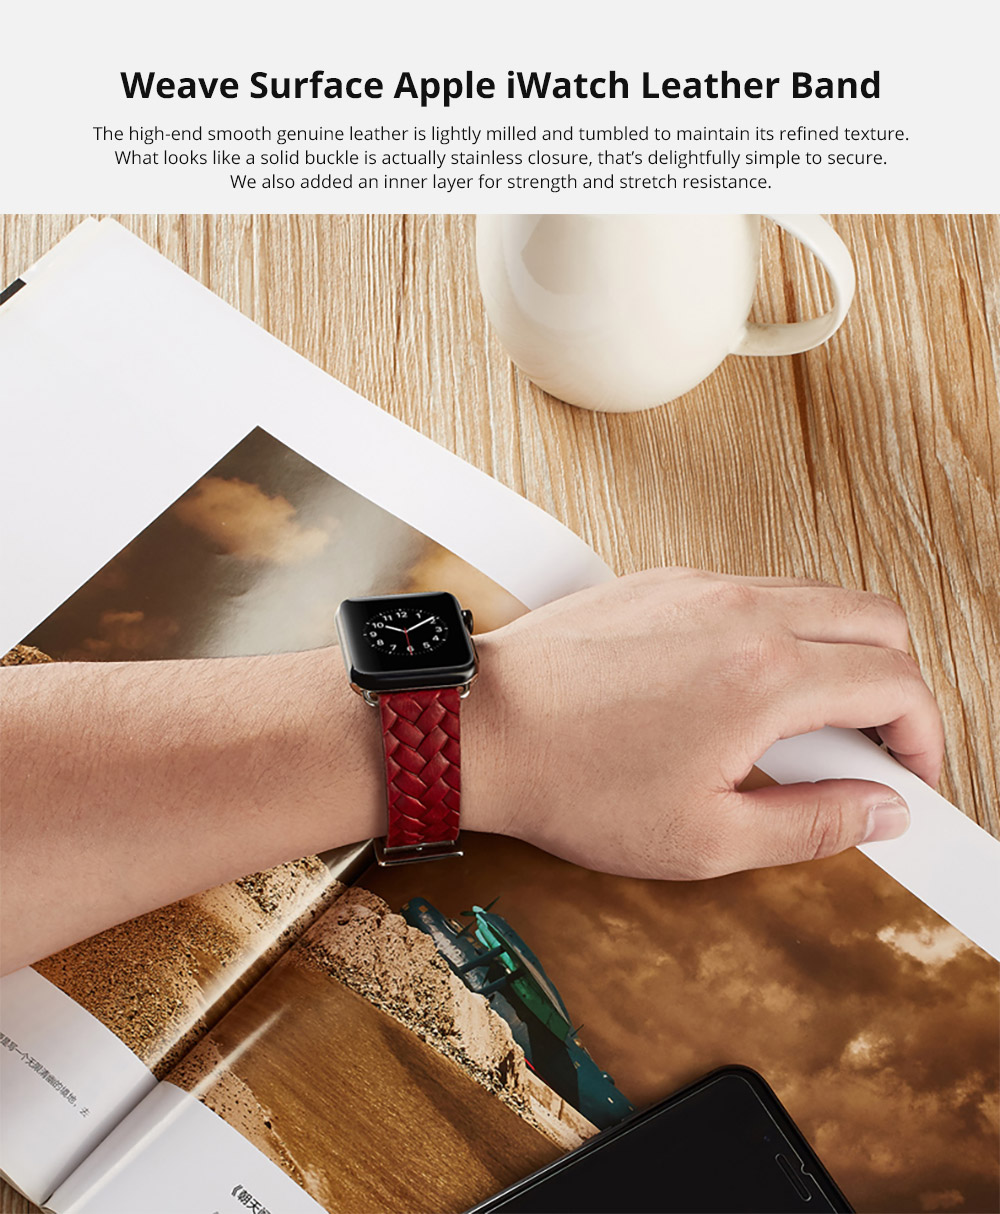 Genuine Leather Watch Band with Stainless Metal Buckle for Apple iWatch, Superior Weave Surface Real Leather iWatch Replacement Strap 38mm 42mm 6